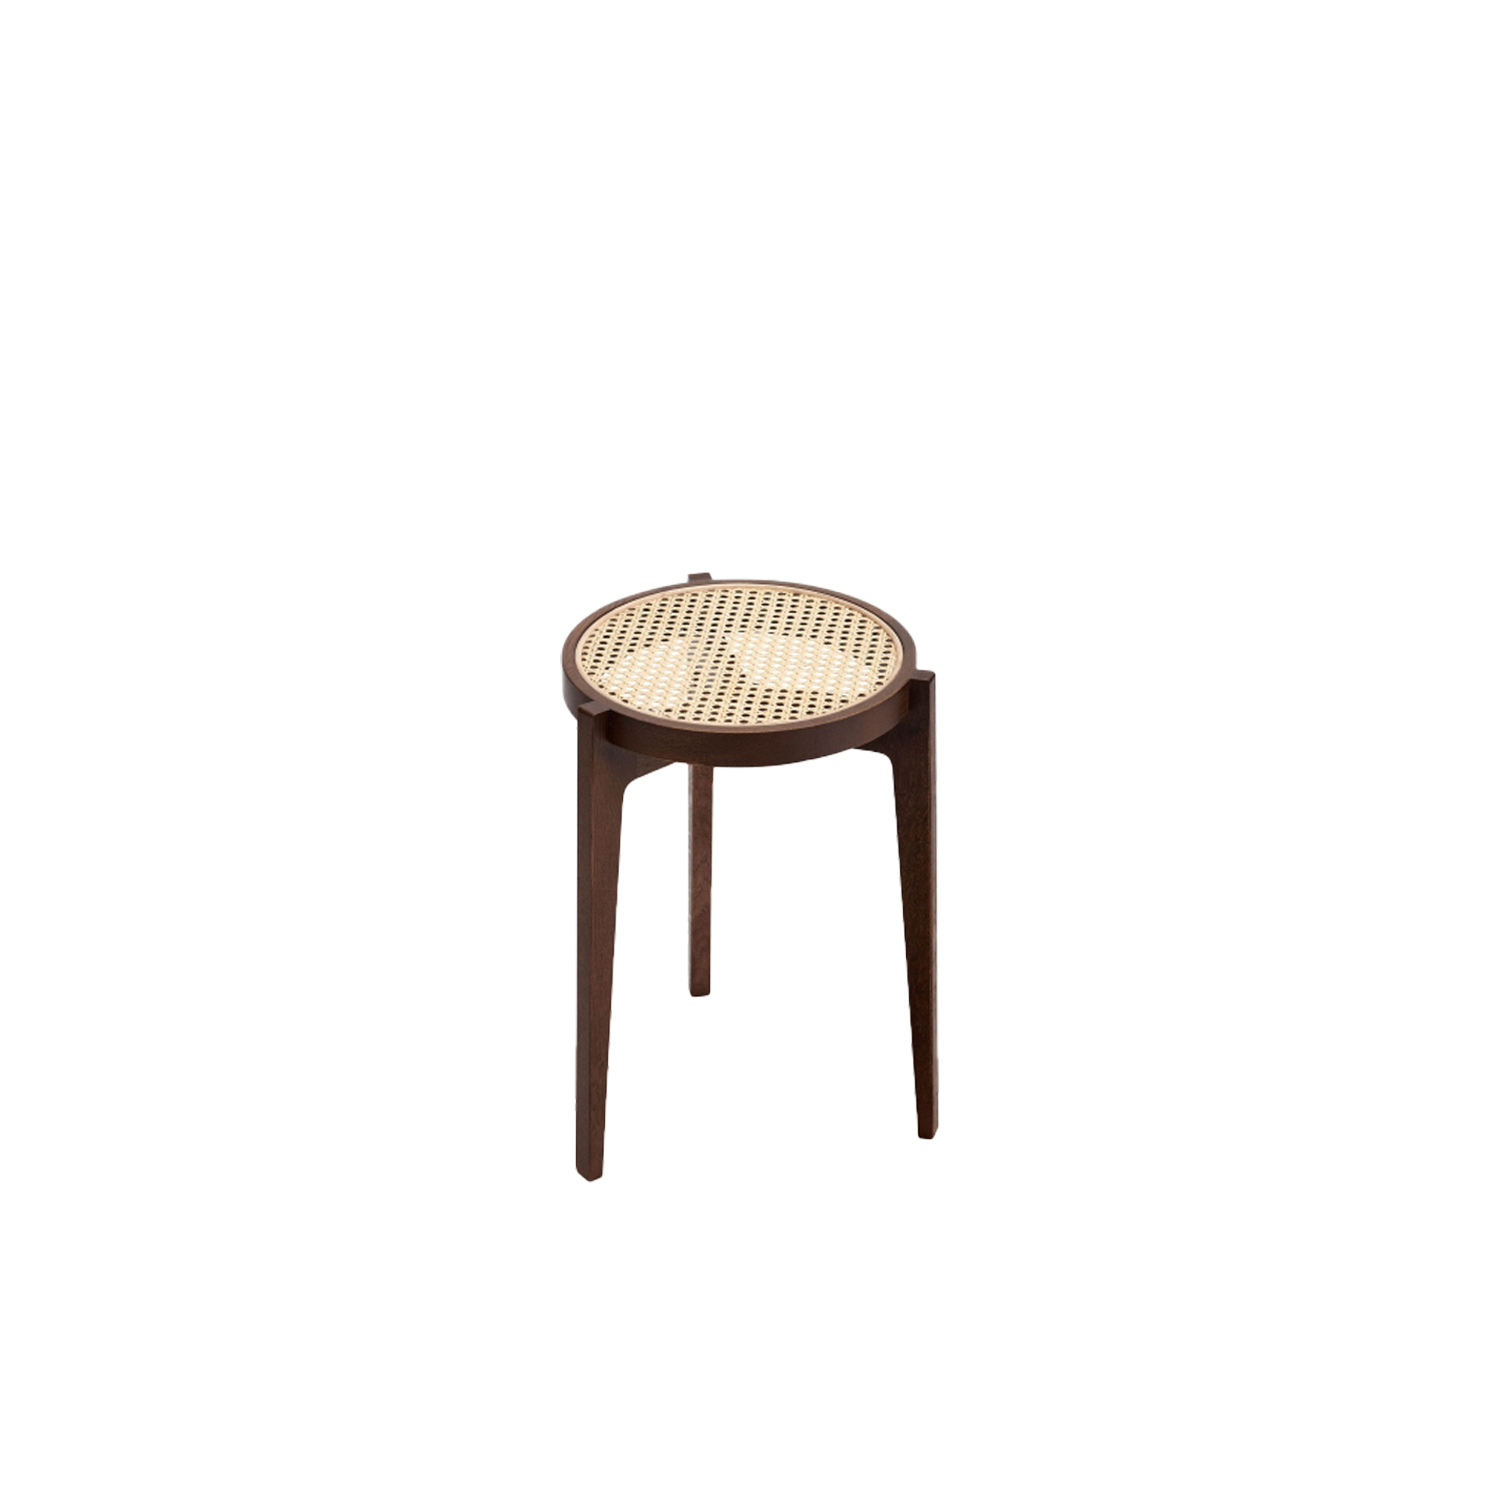 Le Roi Stool - Equally suitable as a seat or a table the Le Roi Stool is a minimalistic version of the classic three-legged stool. The stool is a made from solid oak with inlaid French rattan mesh and can be stacked to save space in a spiralling sculpture. The Le Roi Stool comes in Natural and Dark Stained oak. | Matter of Stuff